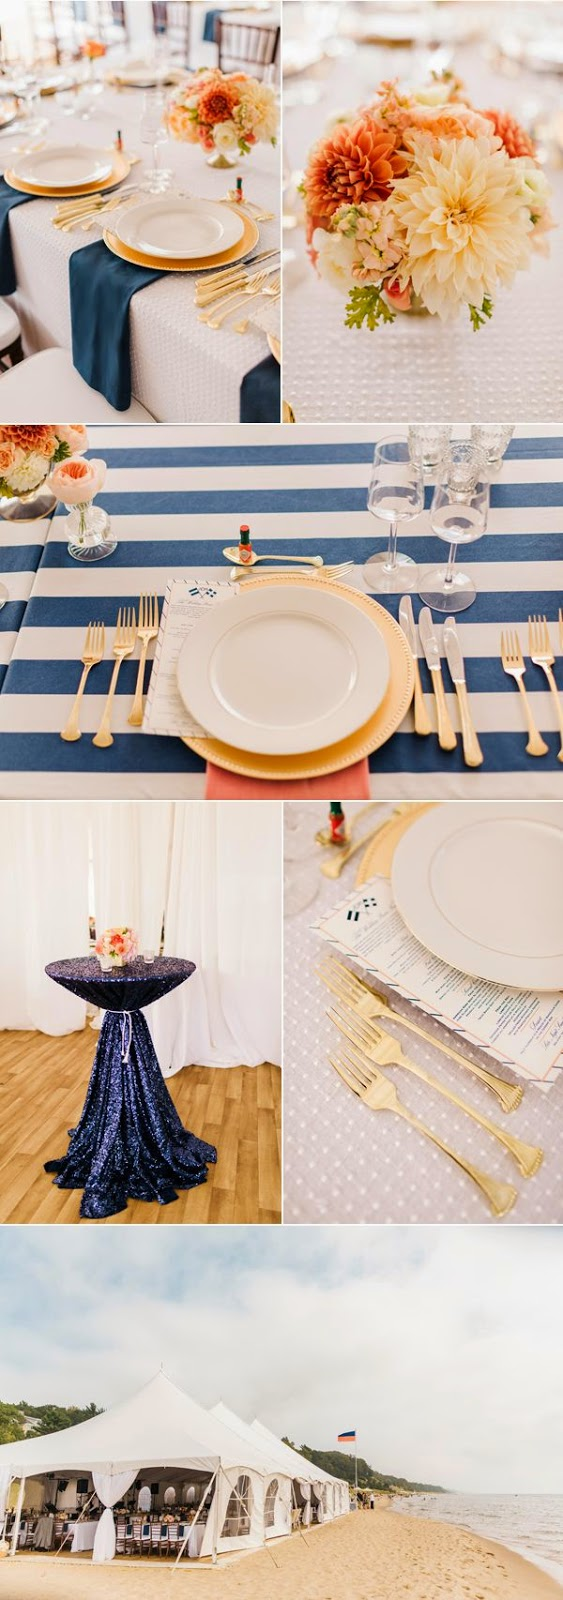 nautical wedding decor nautical table decorations for weddings wedding stuff ideas 6105